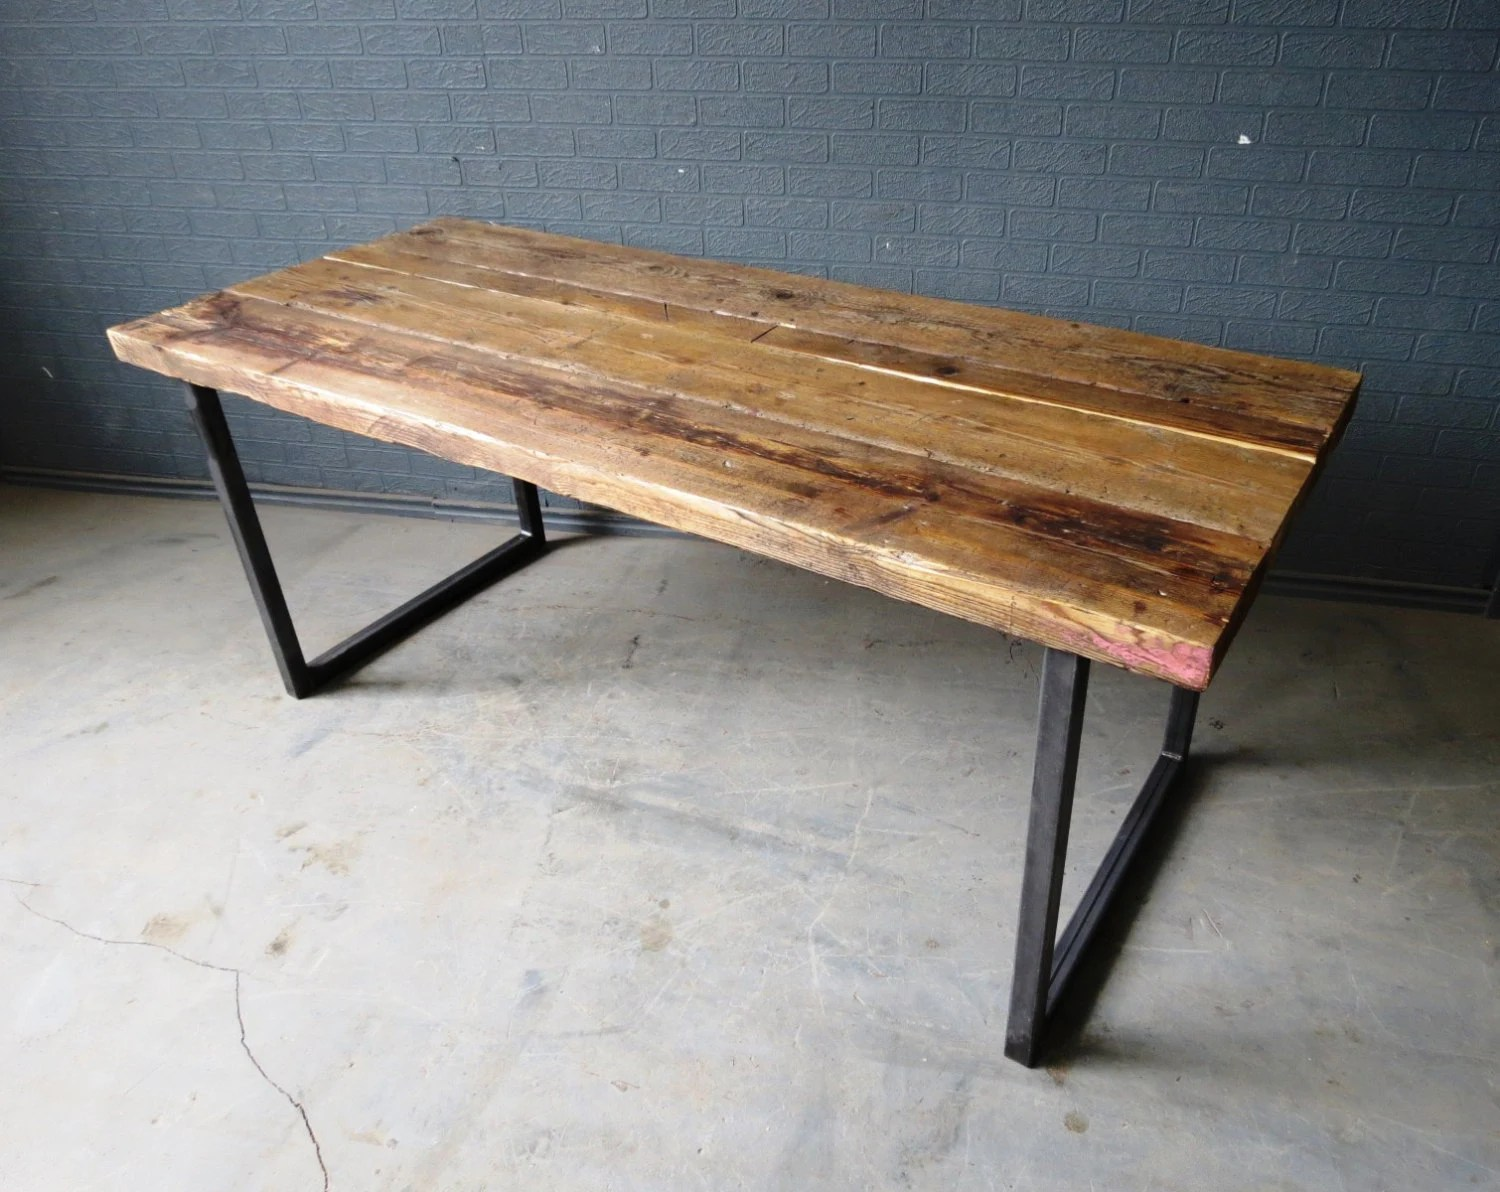 industrial industrial kitchen table Reclaimed Industrial Chic 6 8 Seater Solid Wood and Metal Dining Table Bar Cafe Bar Restaurant Furniture Steel and Wood Made to Measure